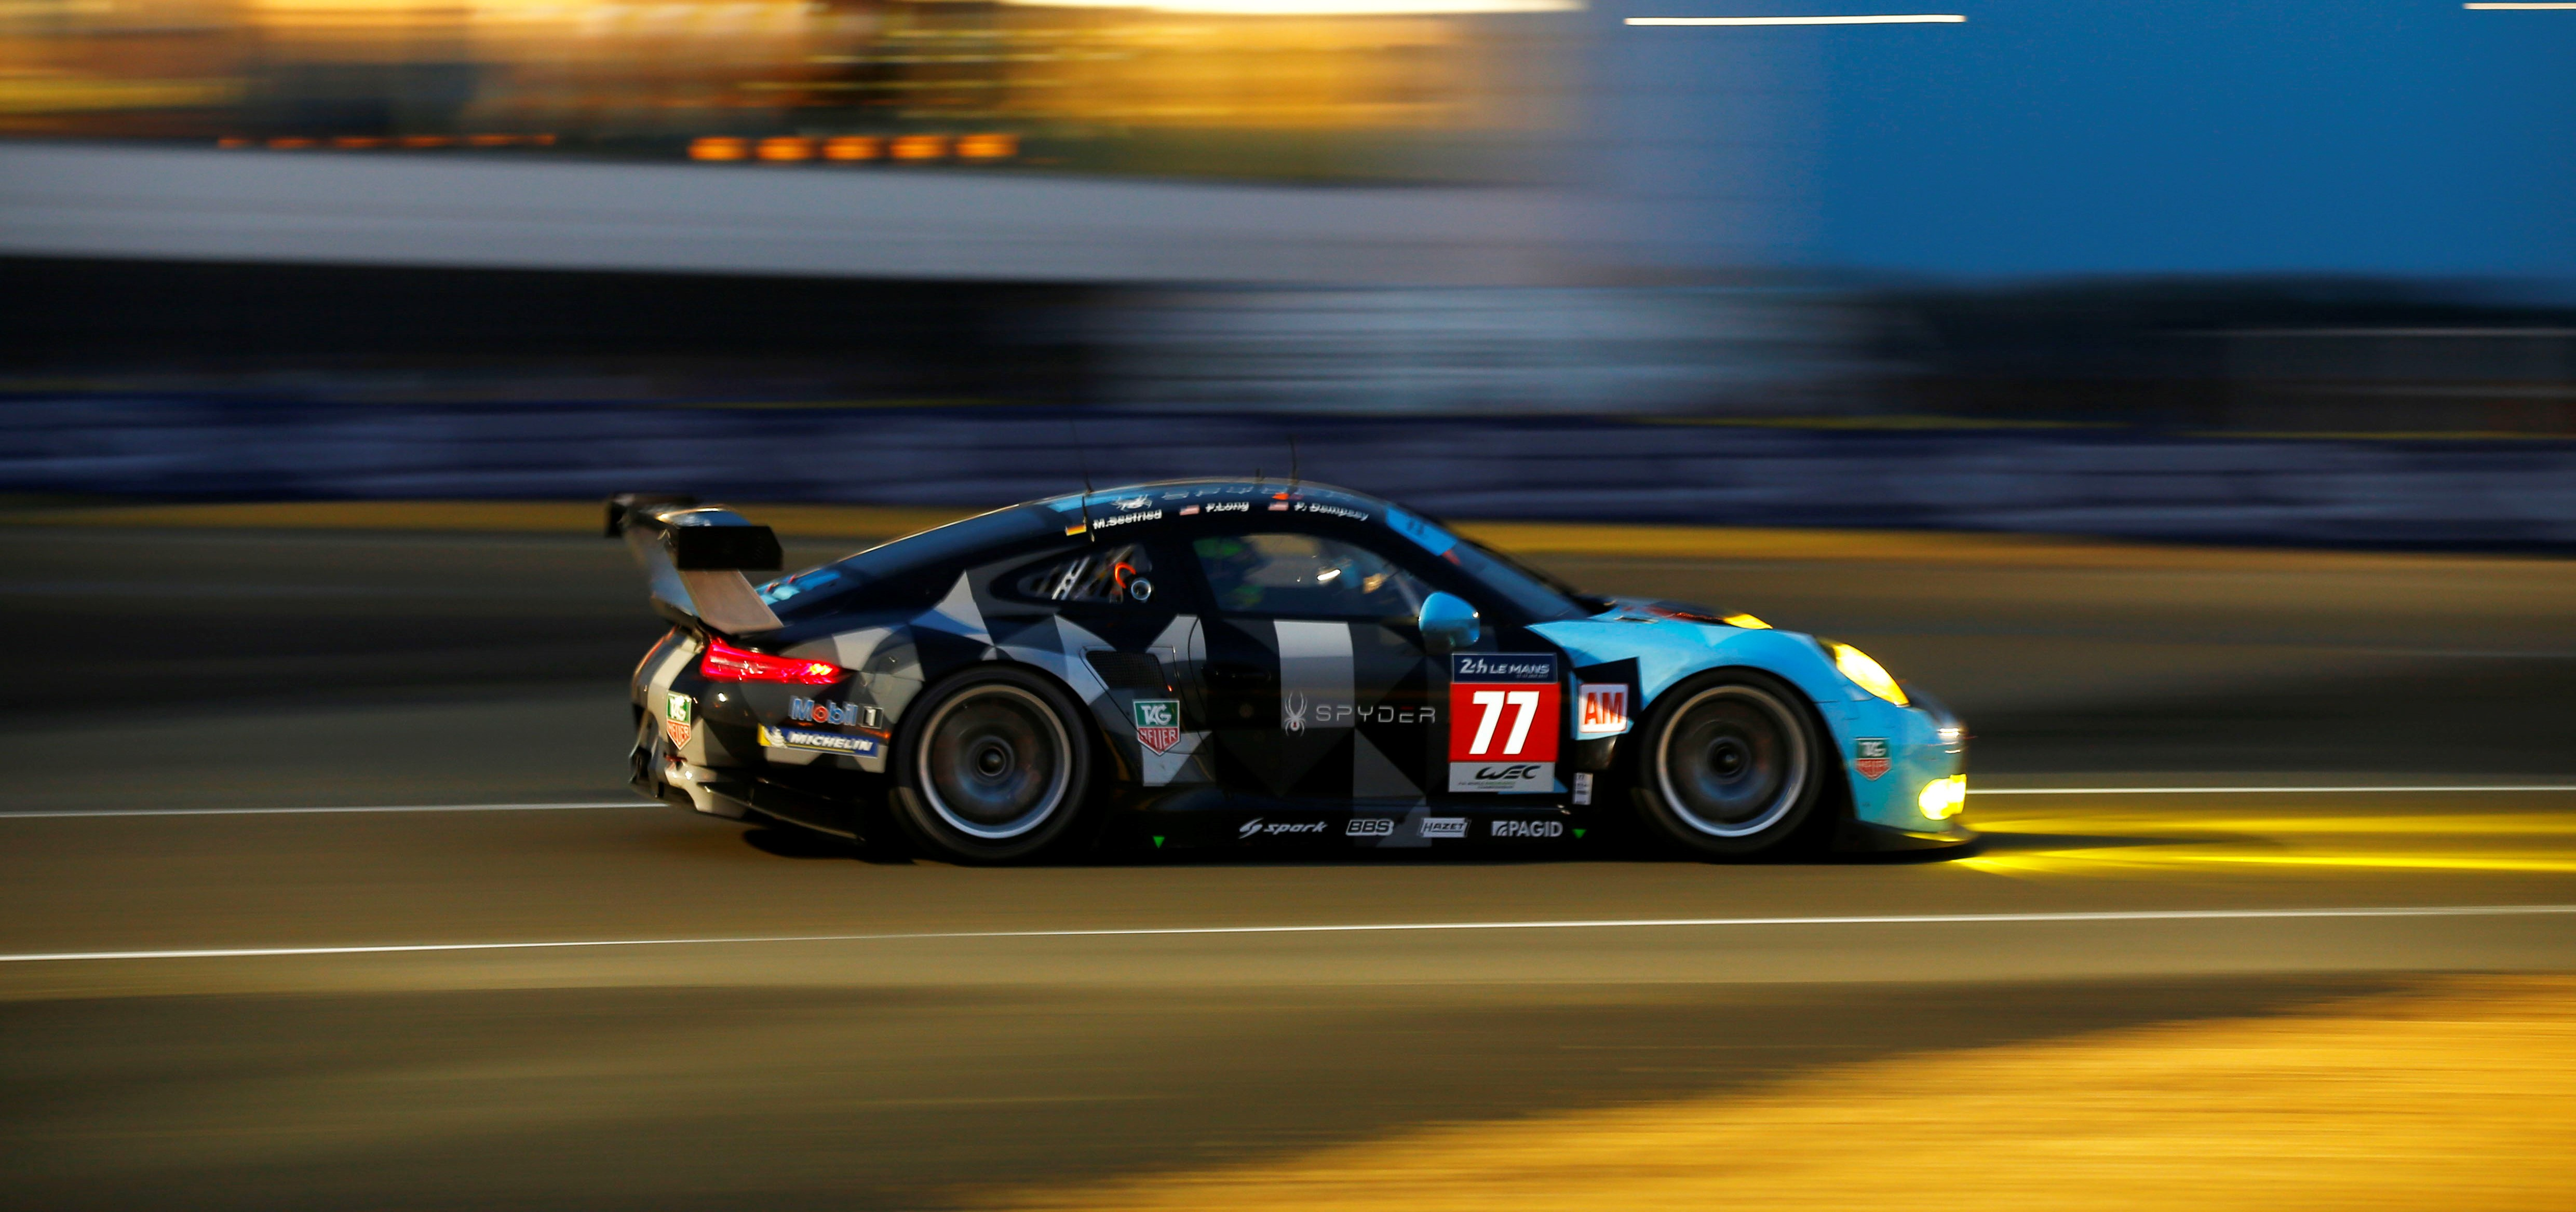 Patrick Dempsey On The Podium At 24 Hours Of Le Mans In